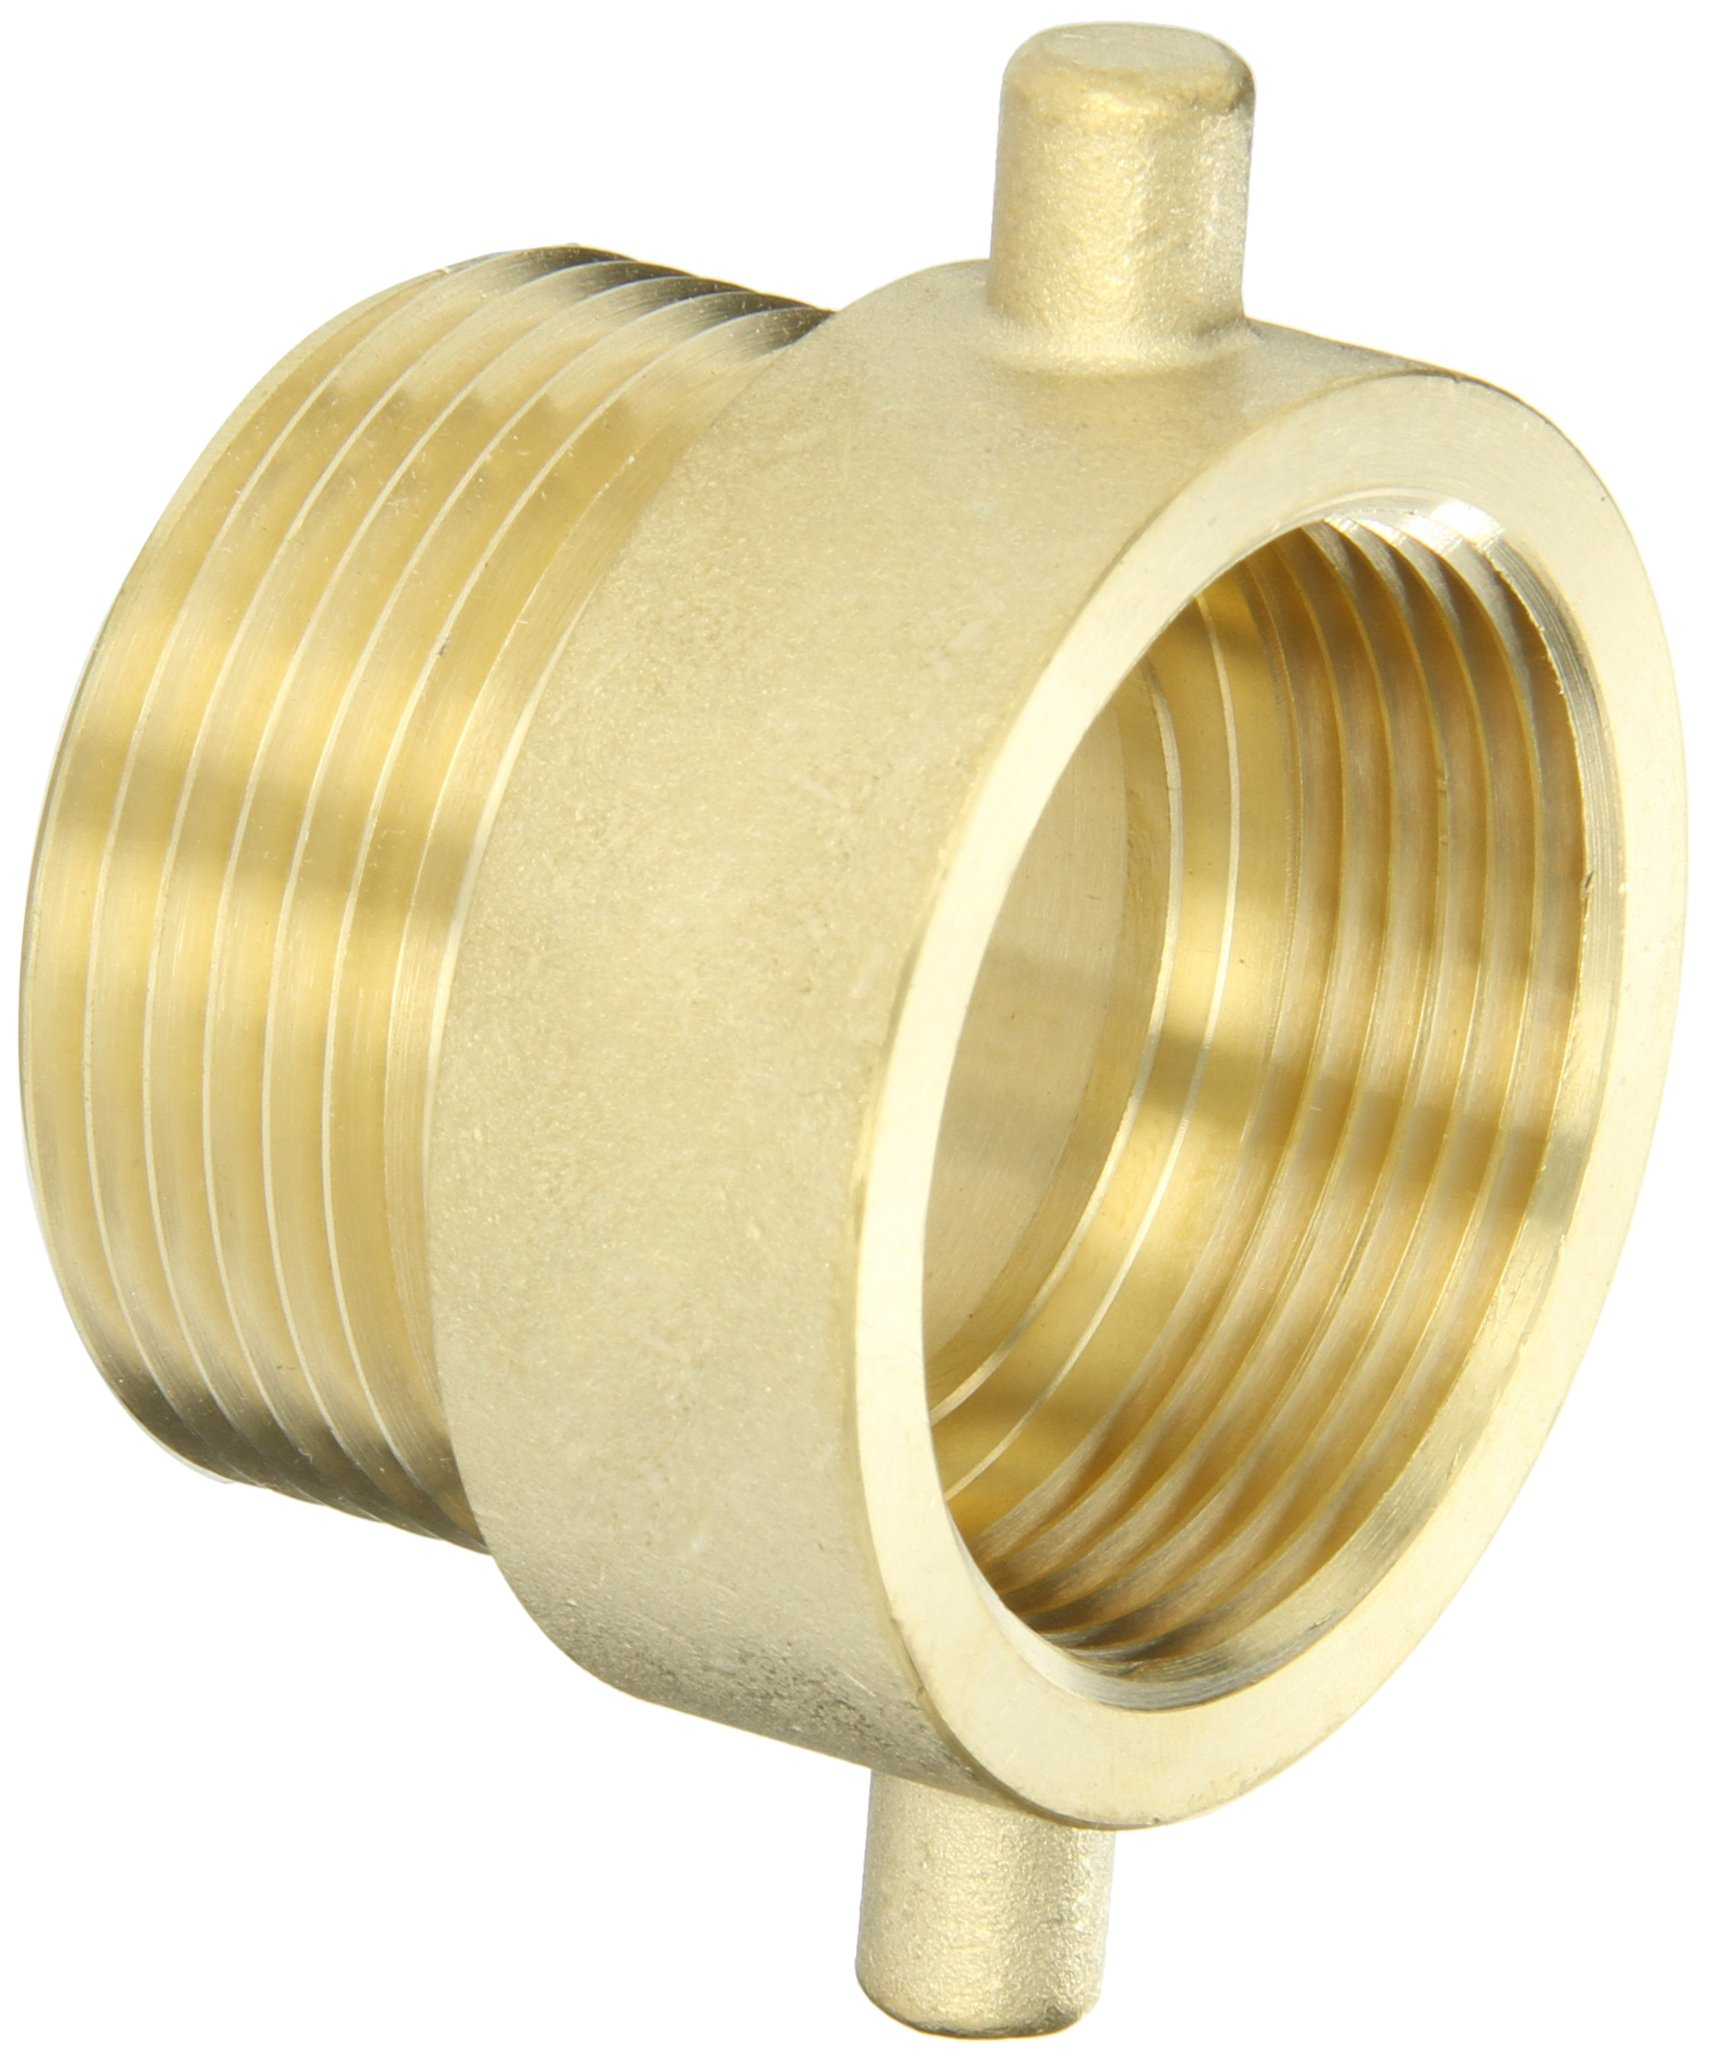 Dixon Valve HA15T15F Brass Fire Equipment, Hydrant Adapter with Pin Lug, 1-1/2'' NPT Female x 1-1/2'' NST (NH) Male